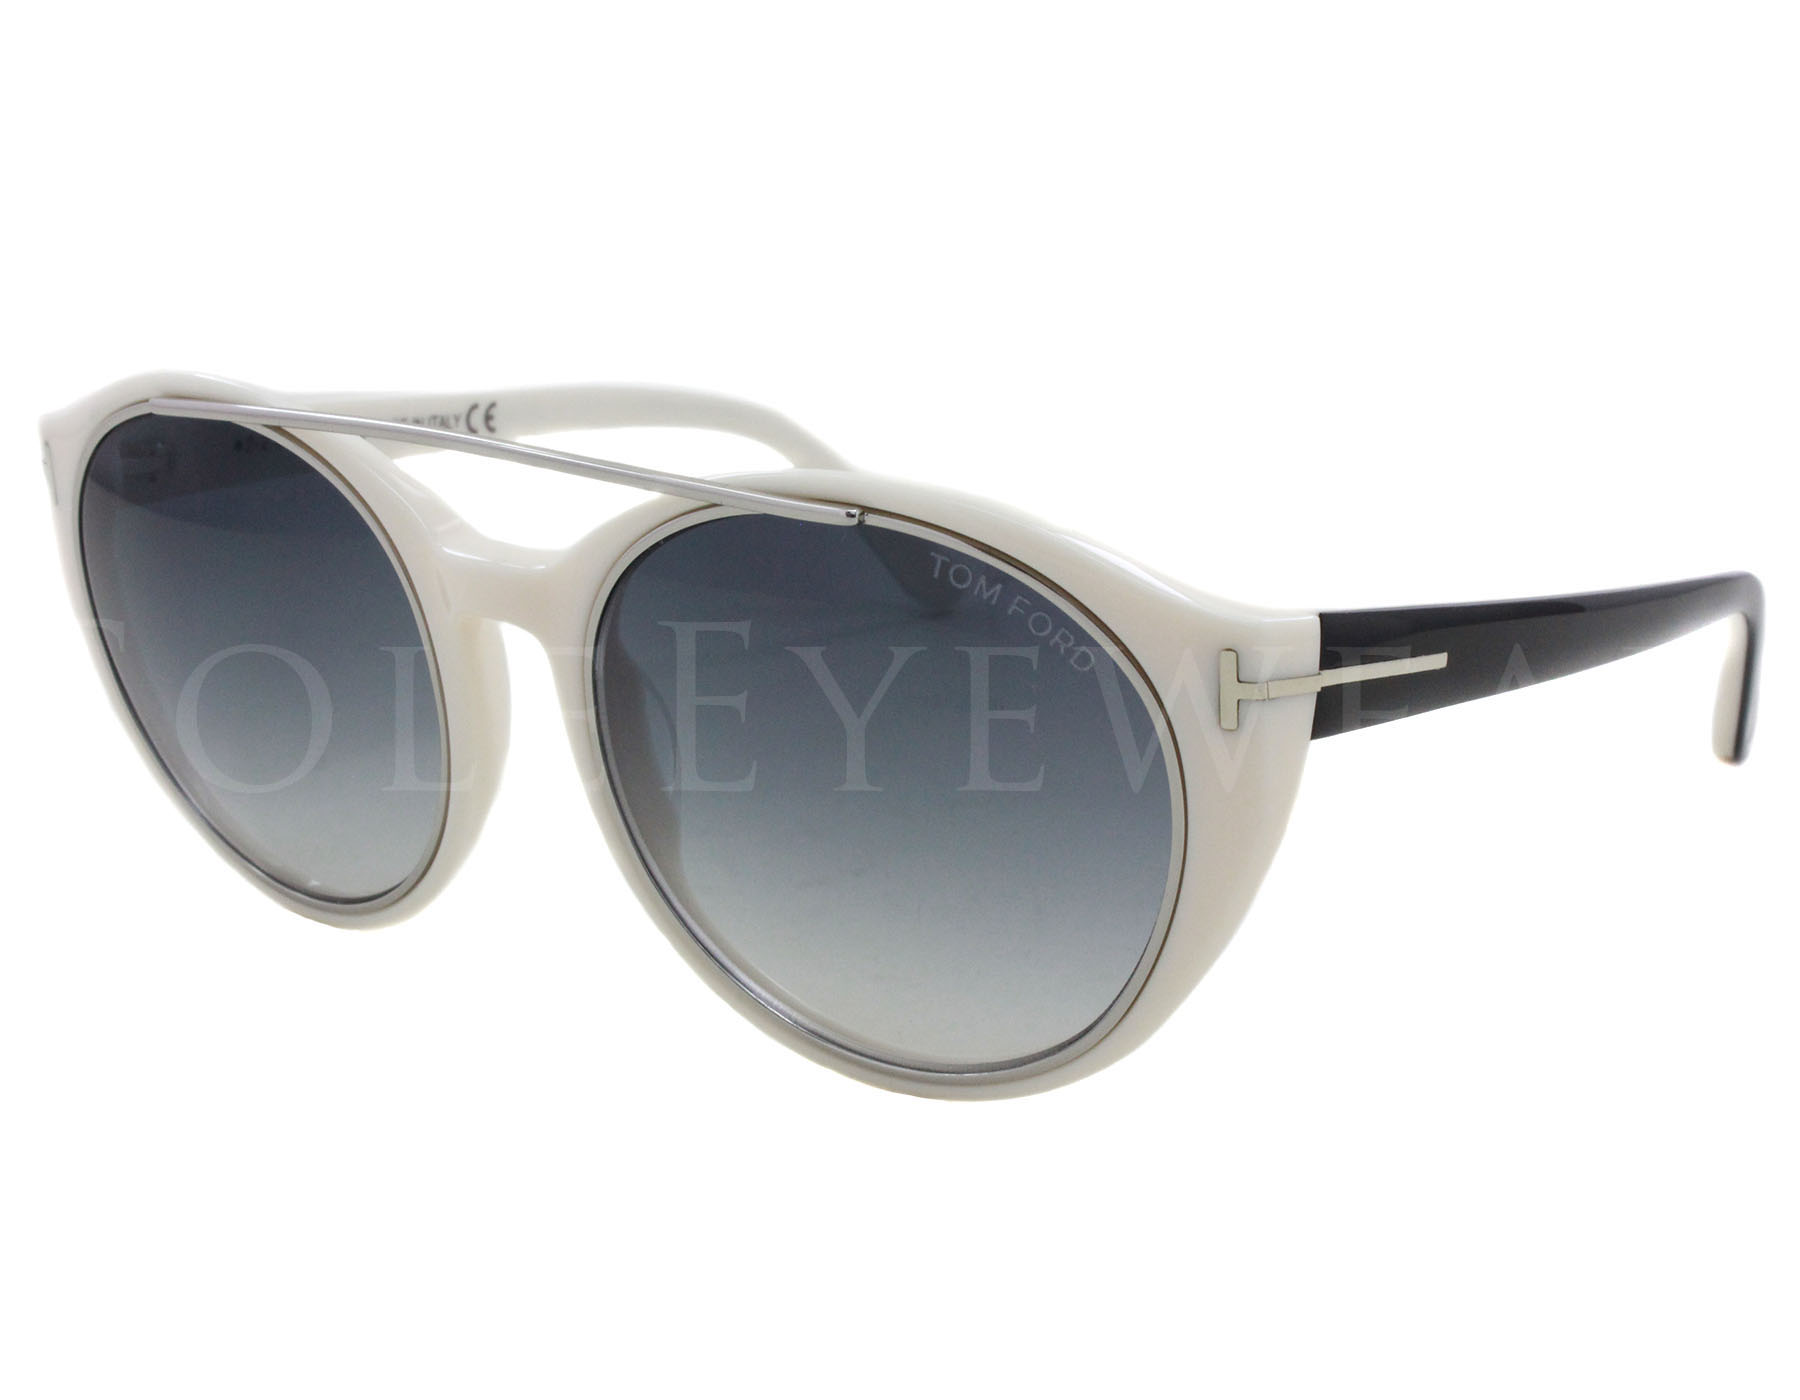 c33c97f26e Details about NEW Tom Ford FT0383-25B TF 383 Joan White Black   Grey  Sunglasses (NO CASE)